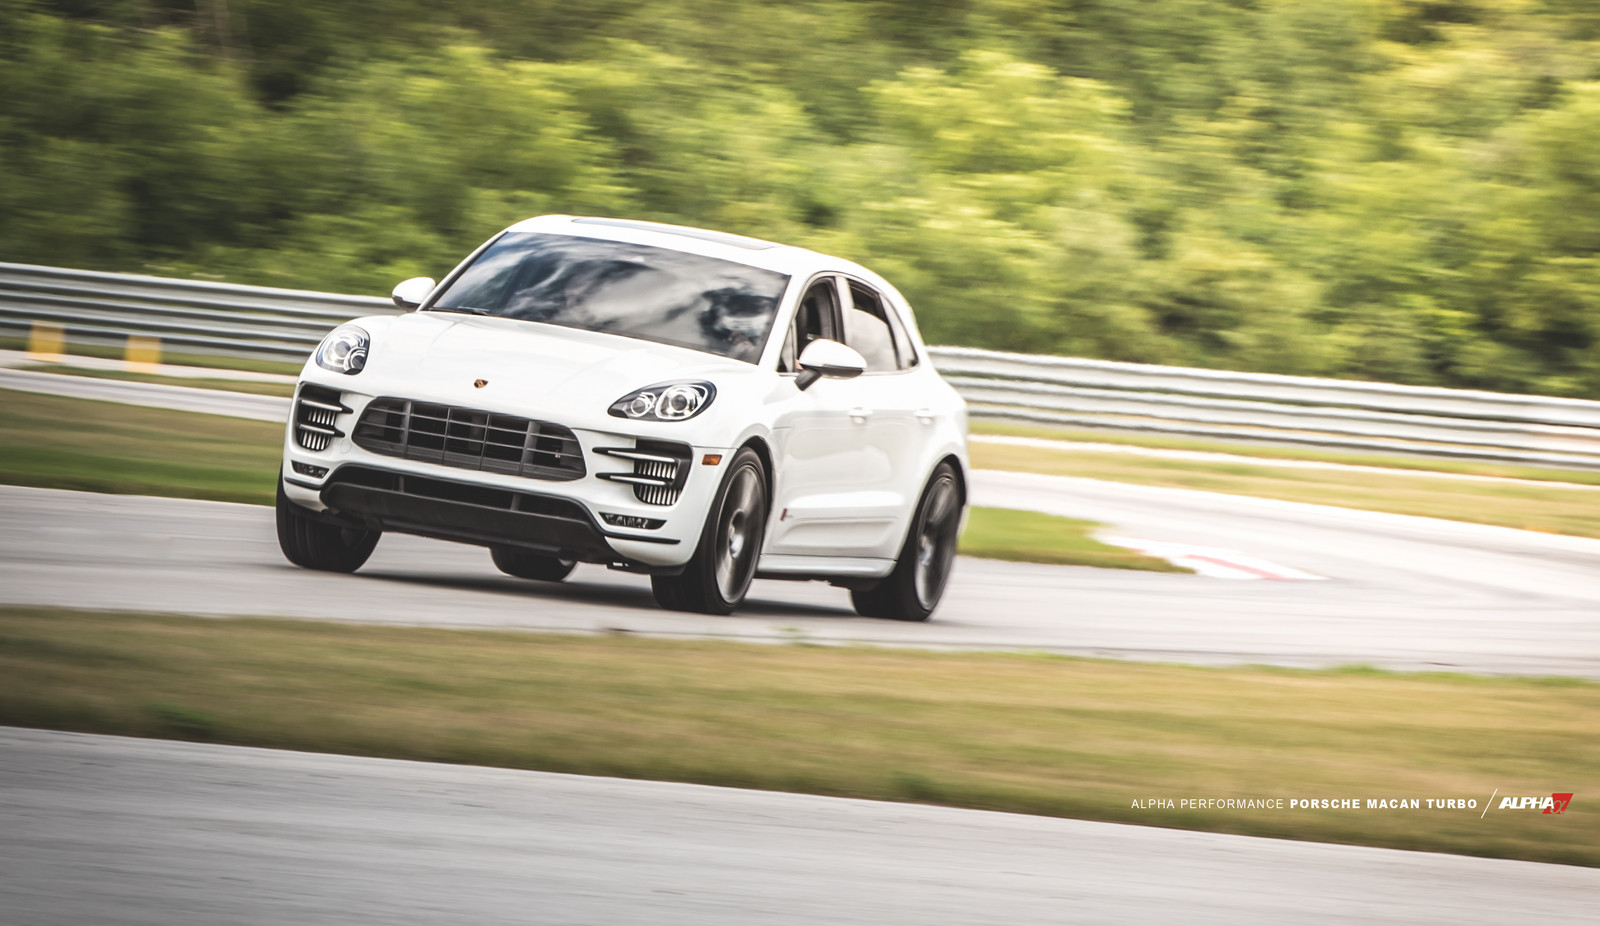 White 2015 Porsche Macan Turbo